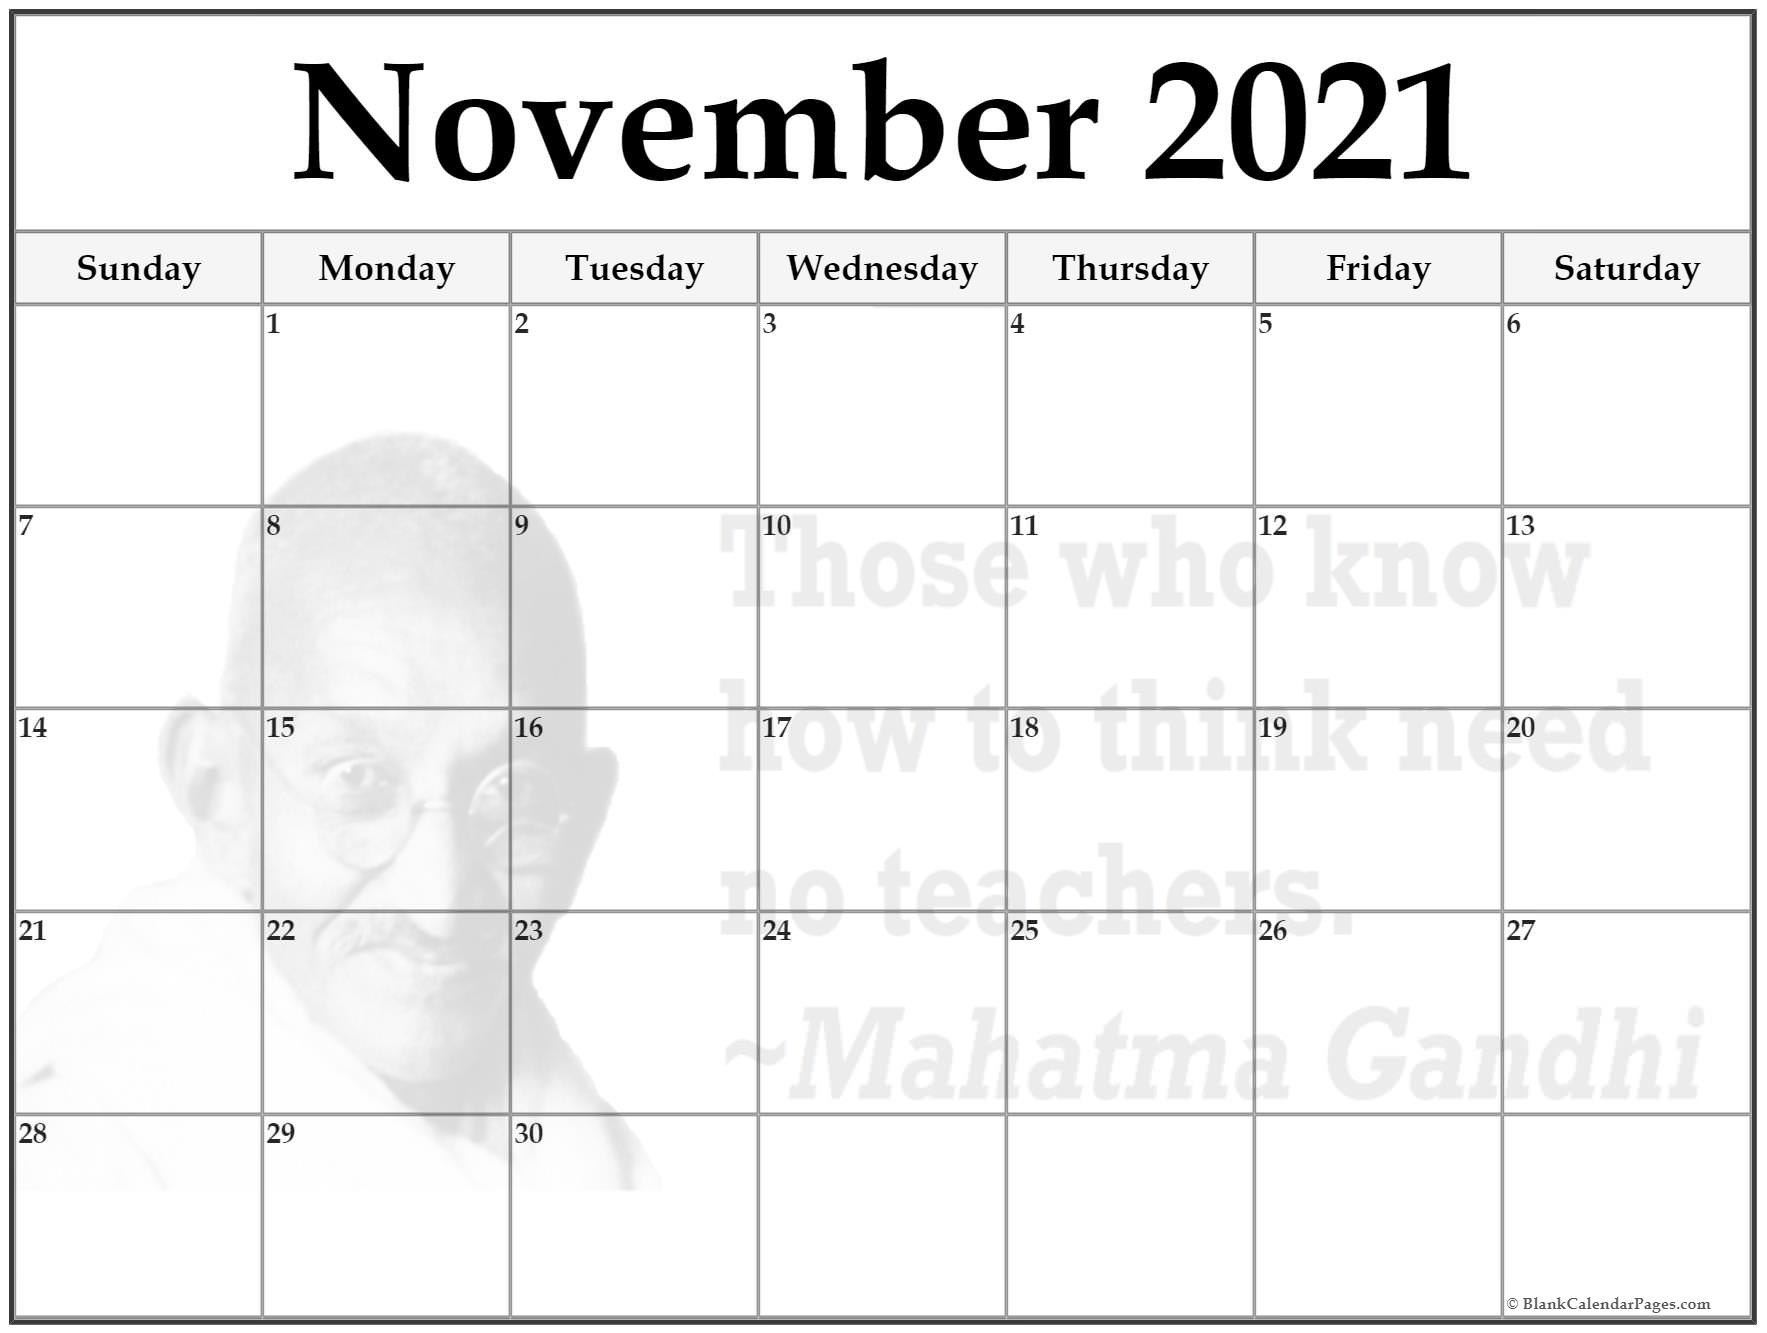 November 2019 monthly calendar template. Those who know how to think need no teachers. ~Mahatma Gandhi